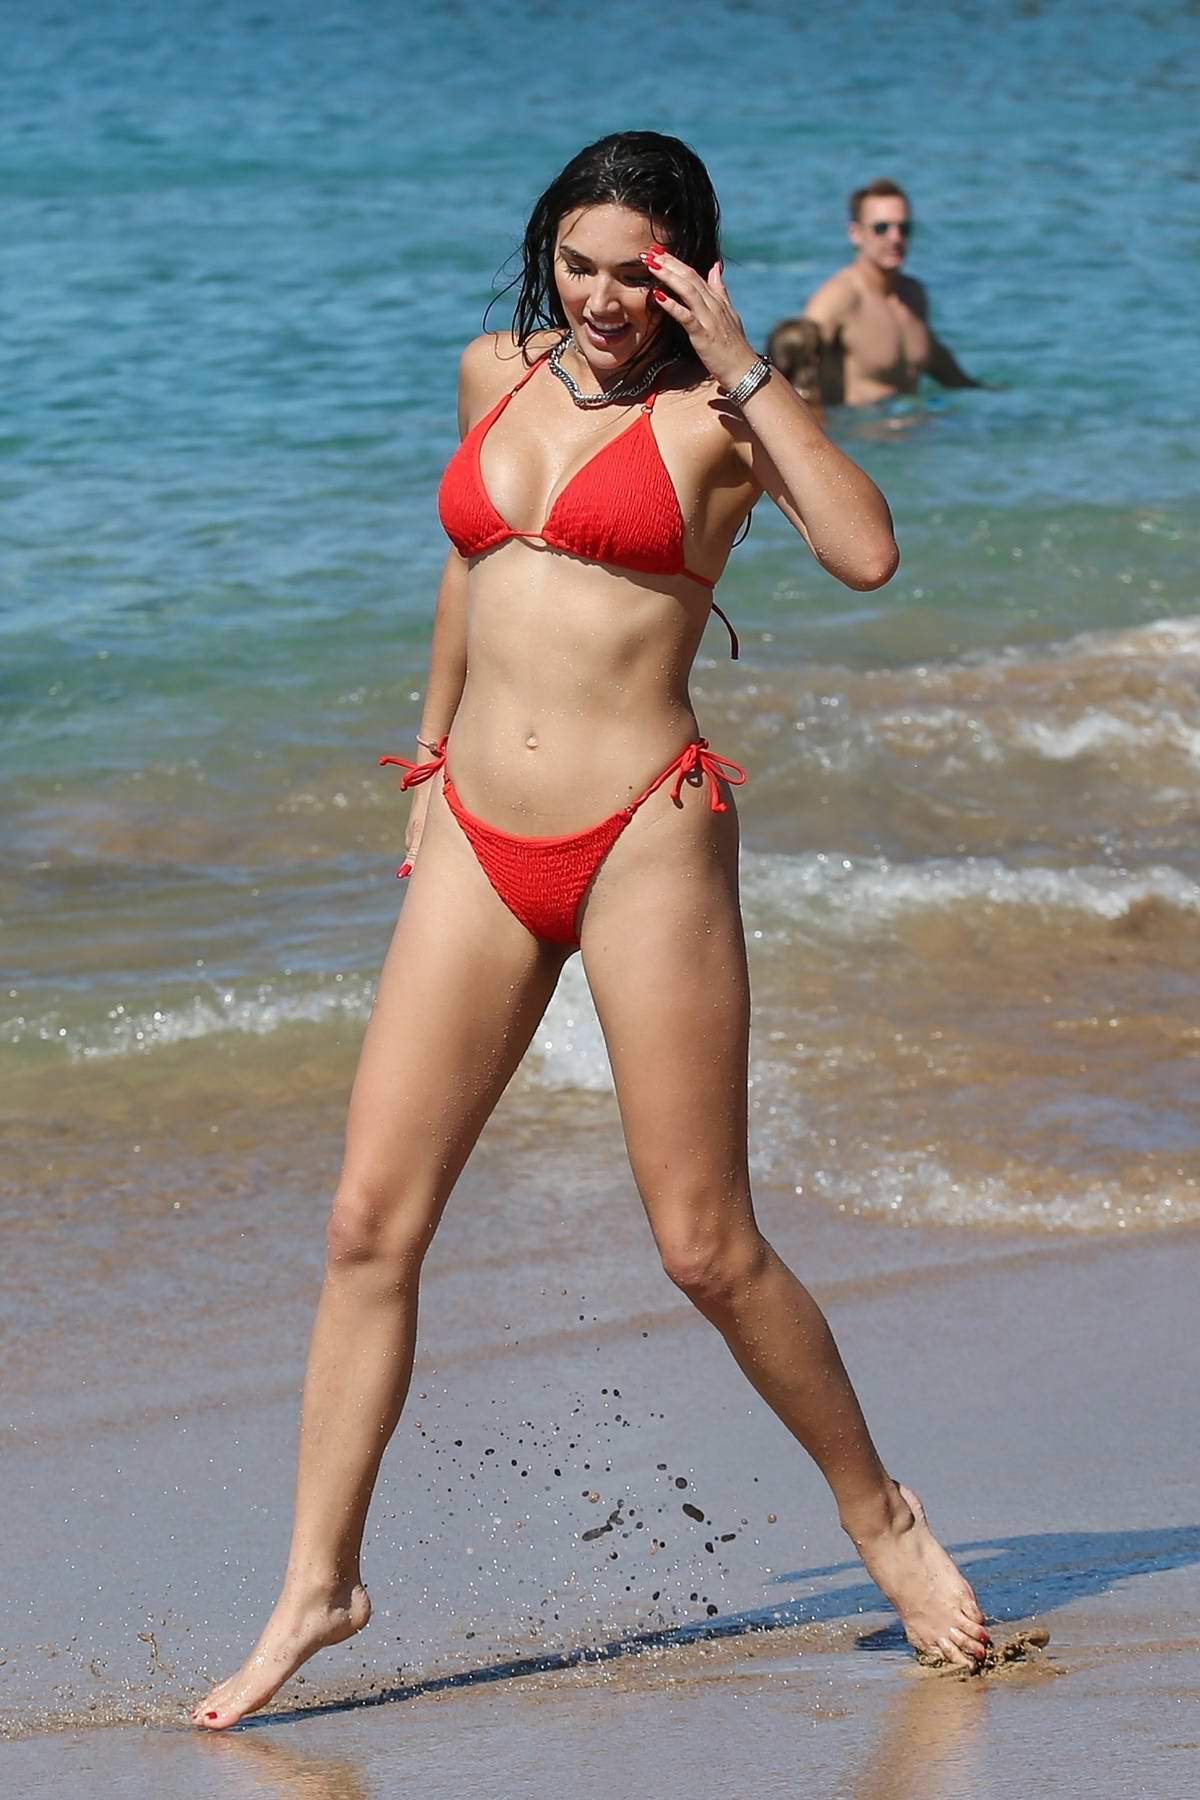 Hailee Lautenbach sizzles in a red bikini during a beach outing in Maui, Hawaii